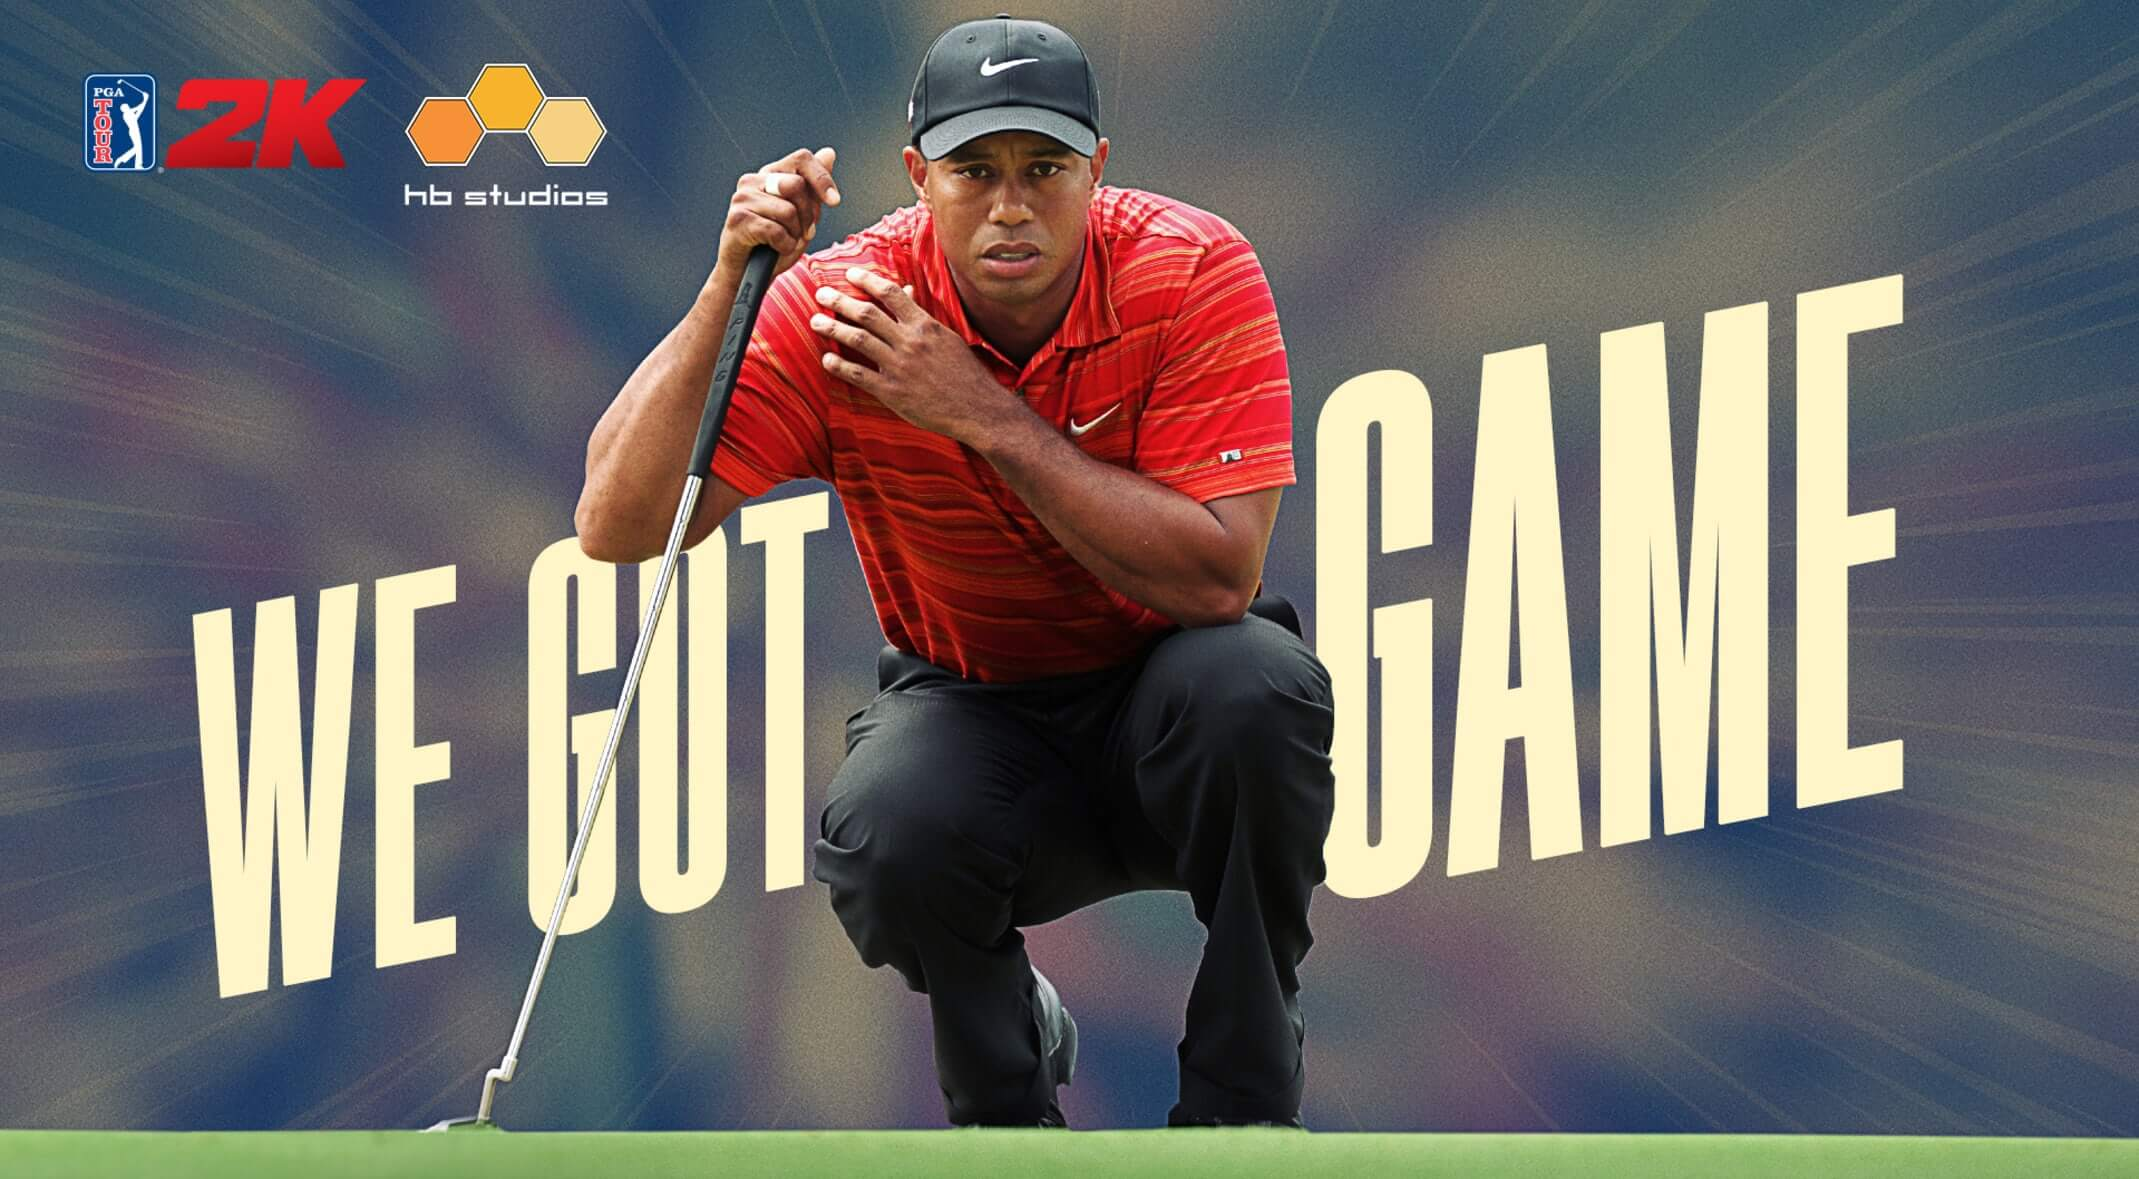 Promotional shot of Tiger Woods for new deal with 2K